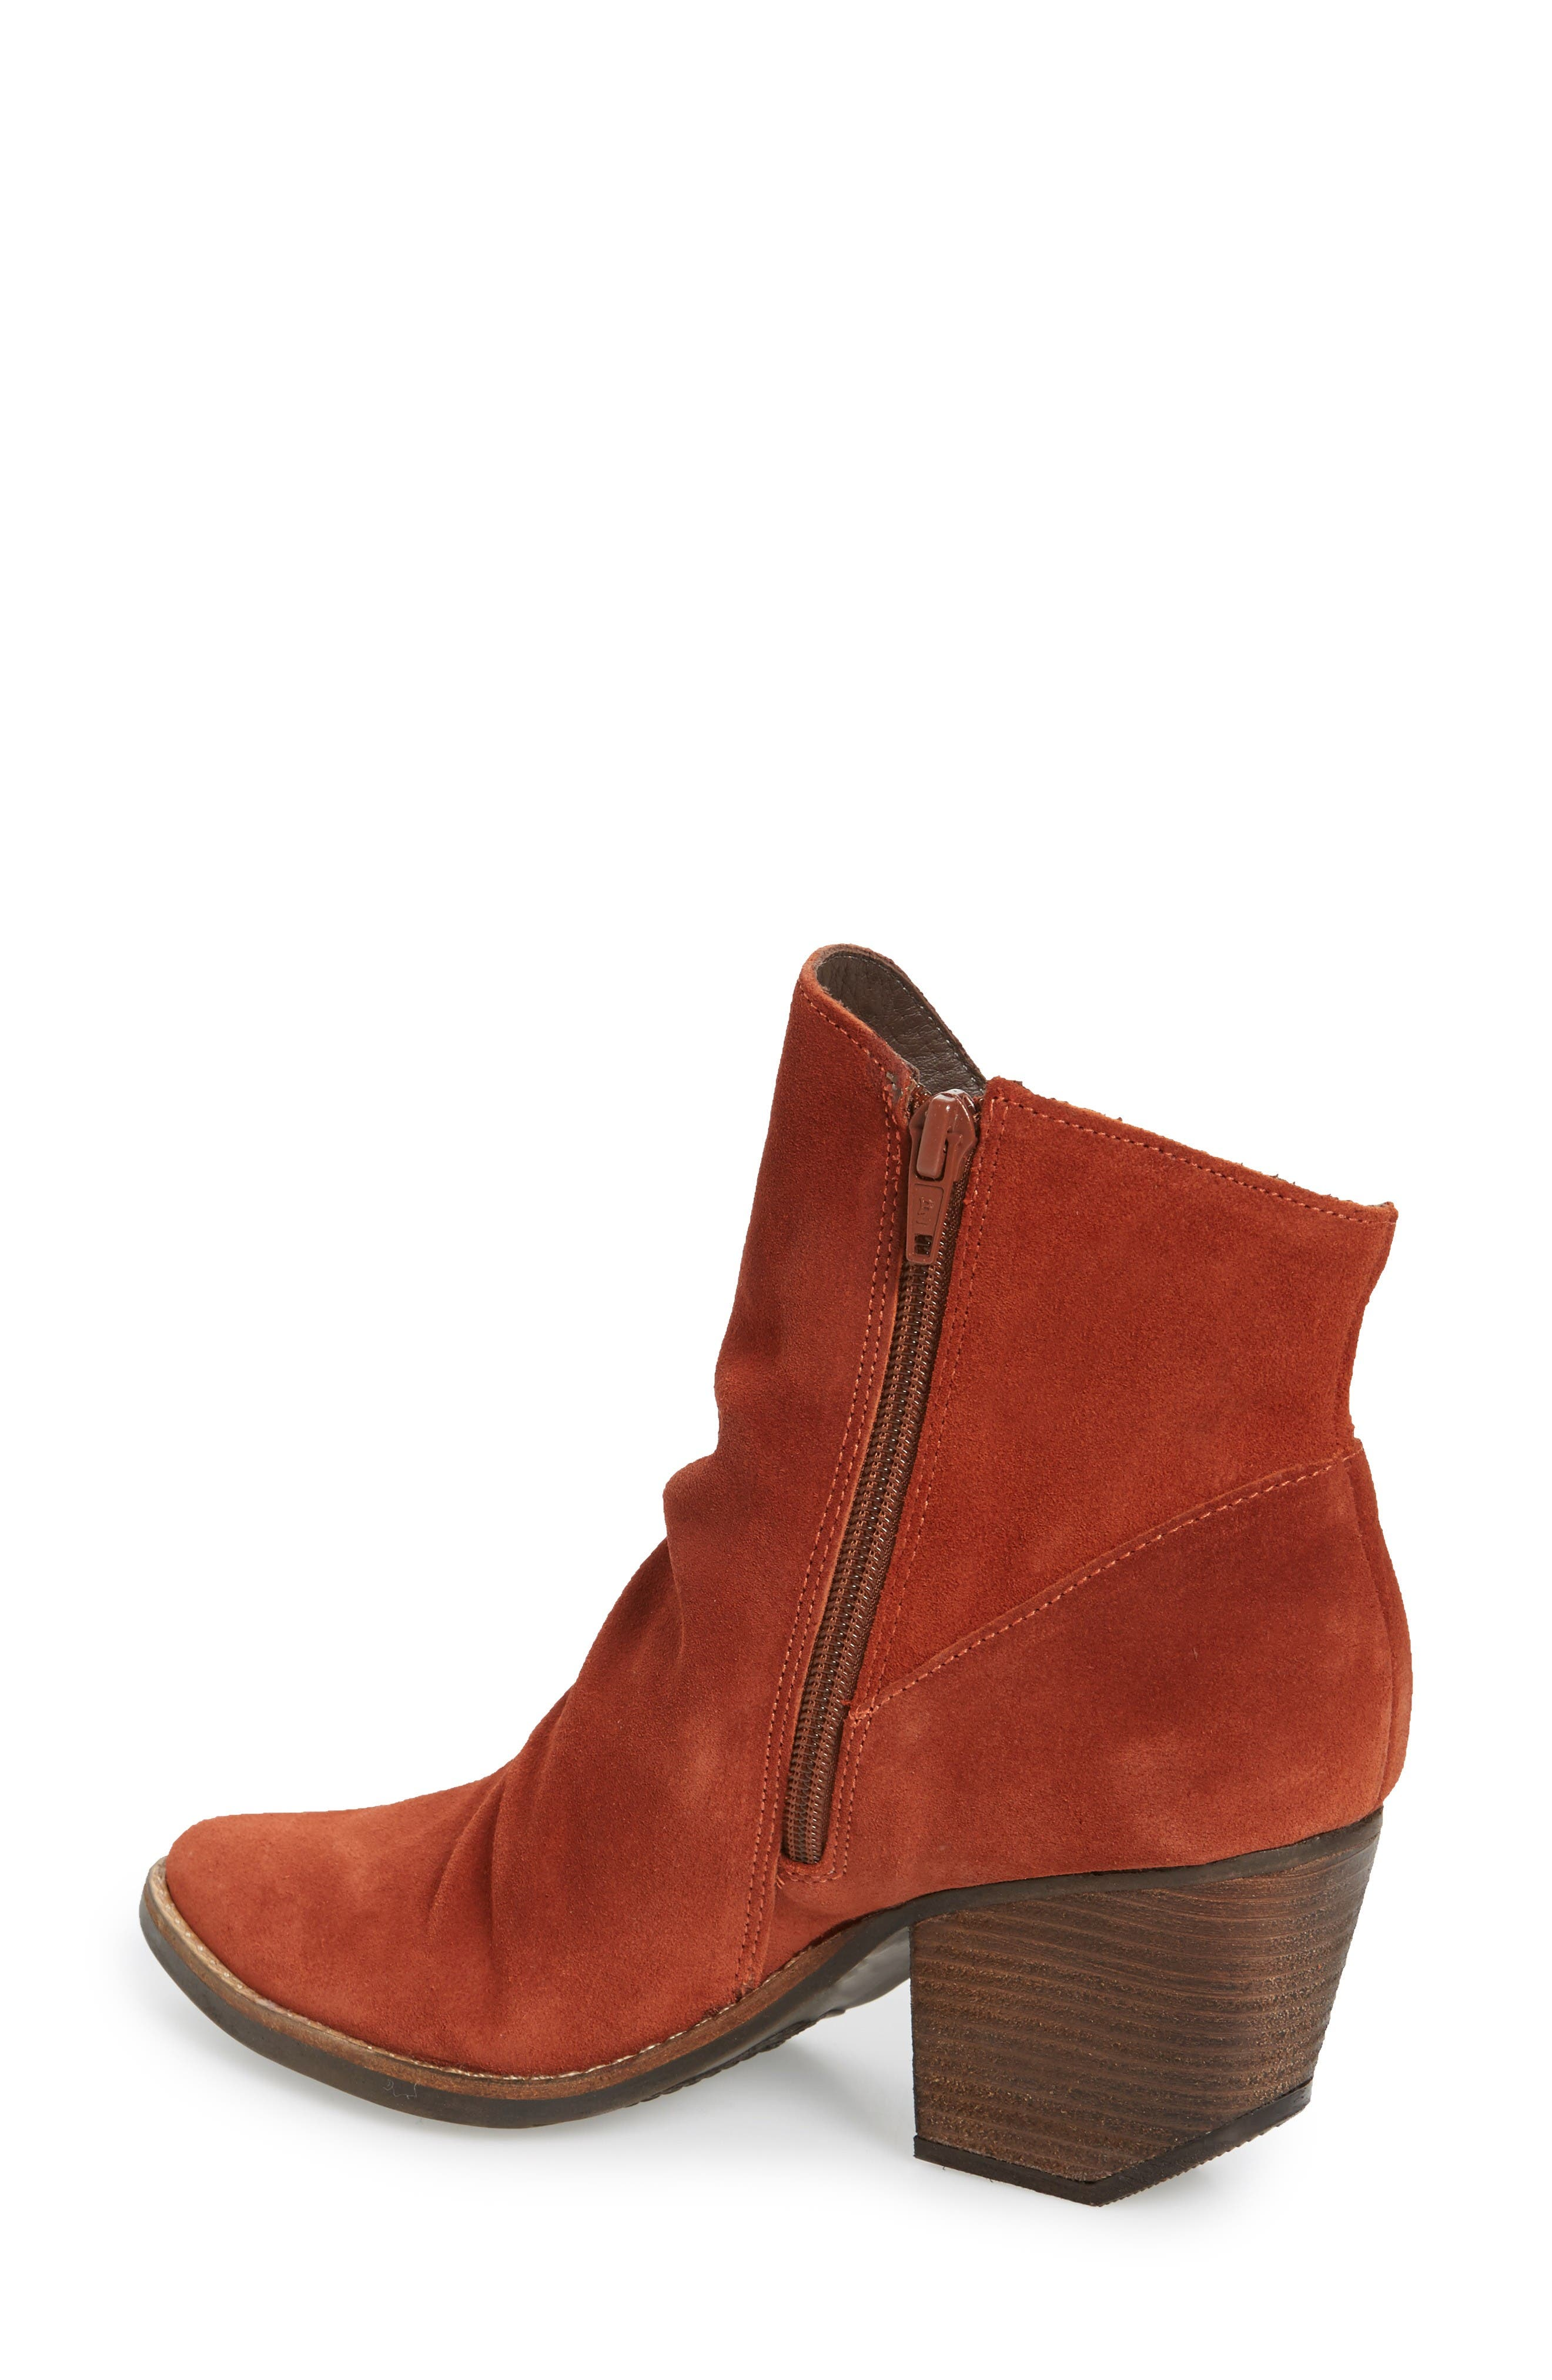 Society Bootie,                             Alternate thumbnail 2, color,                             Rust Suede